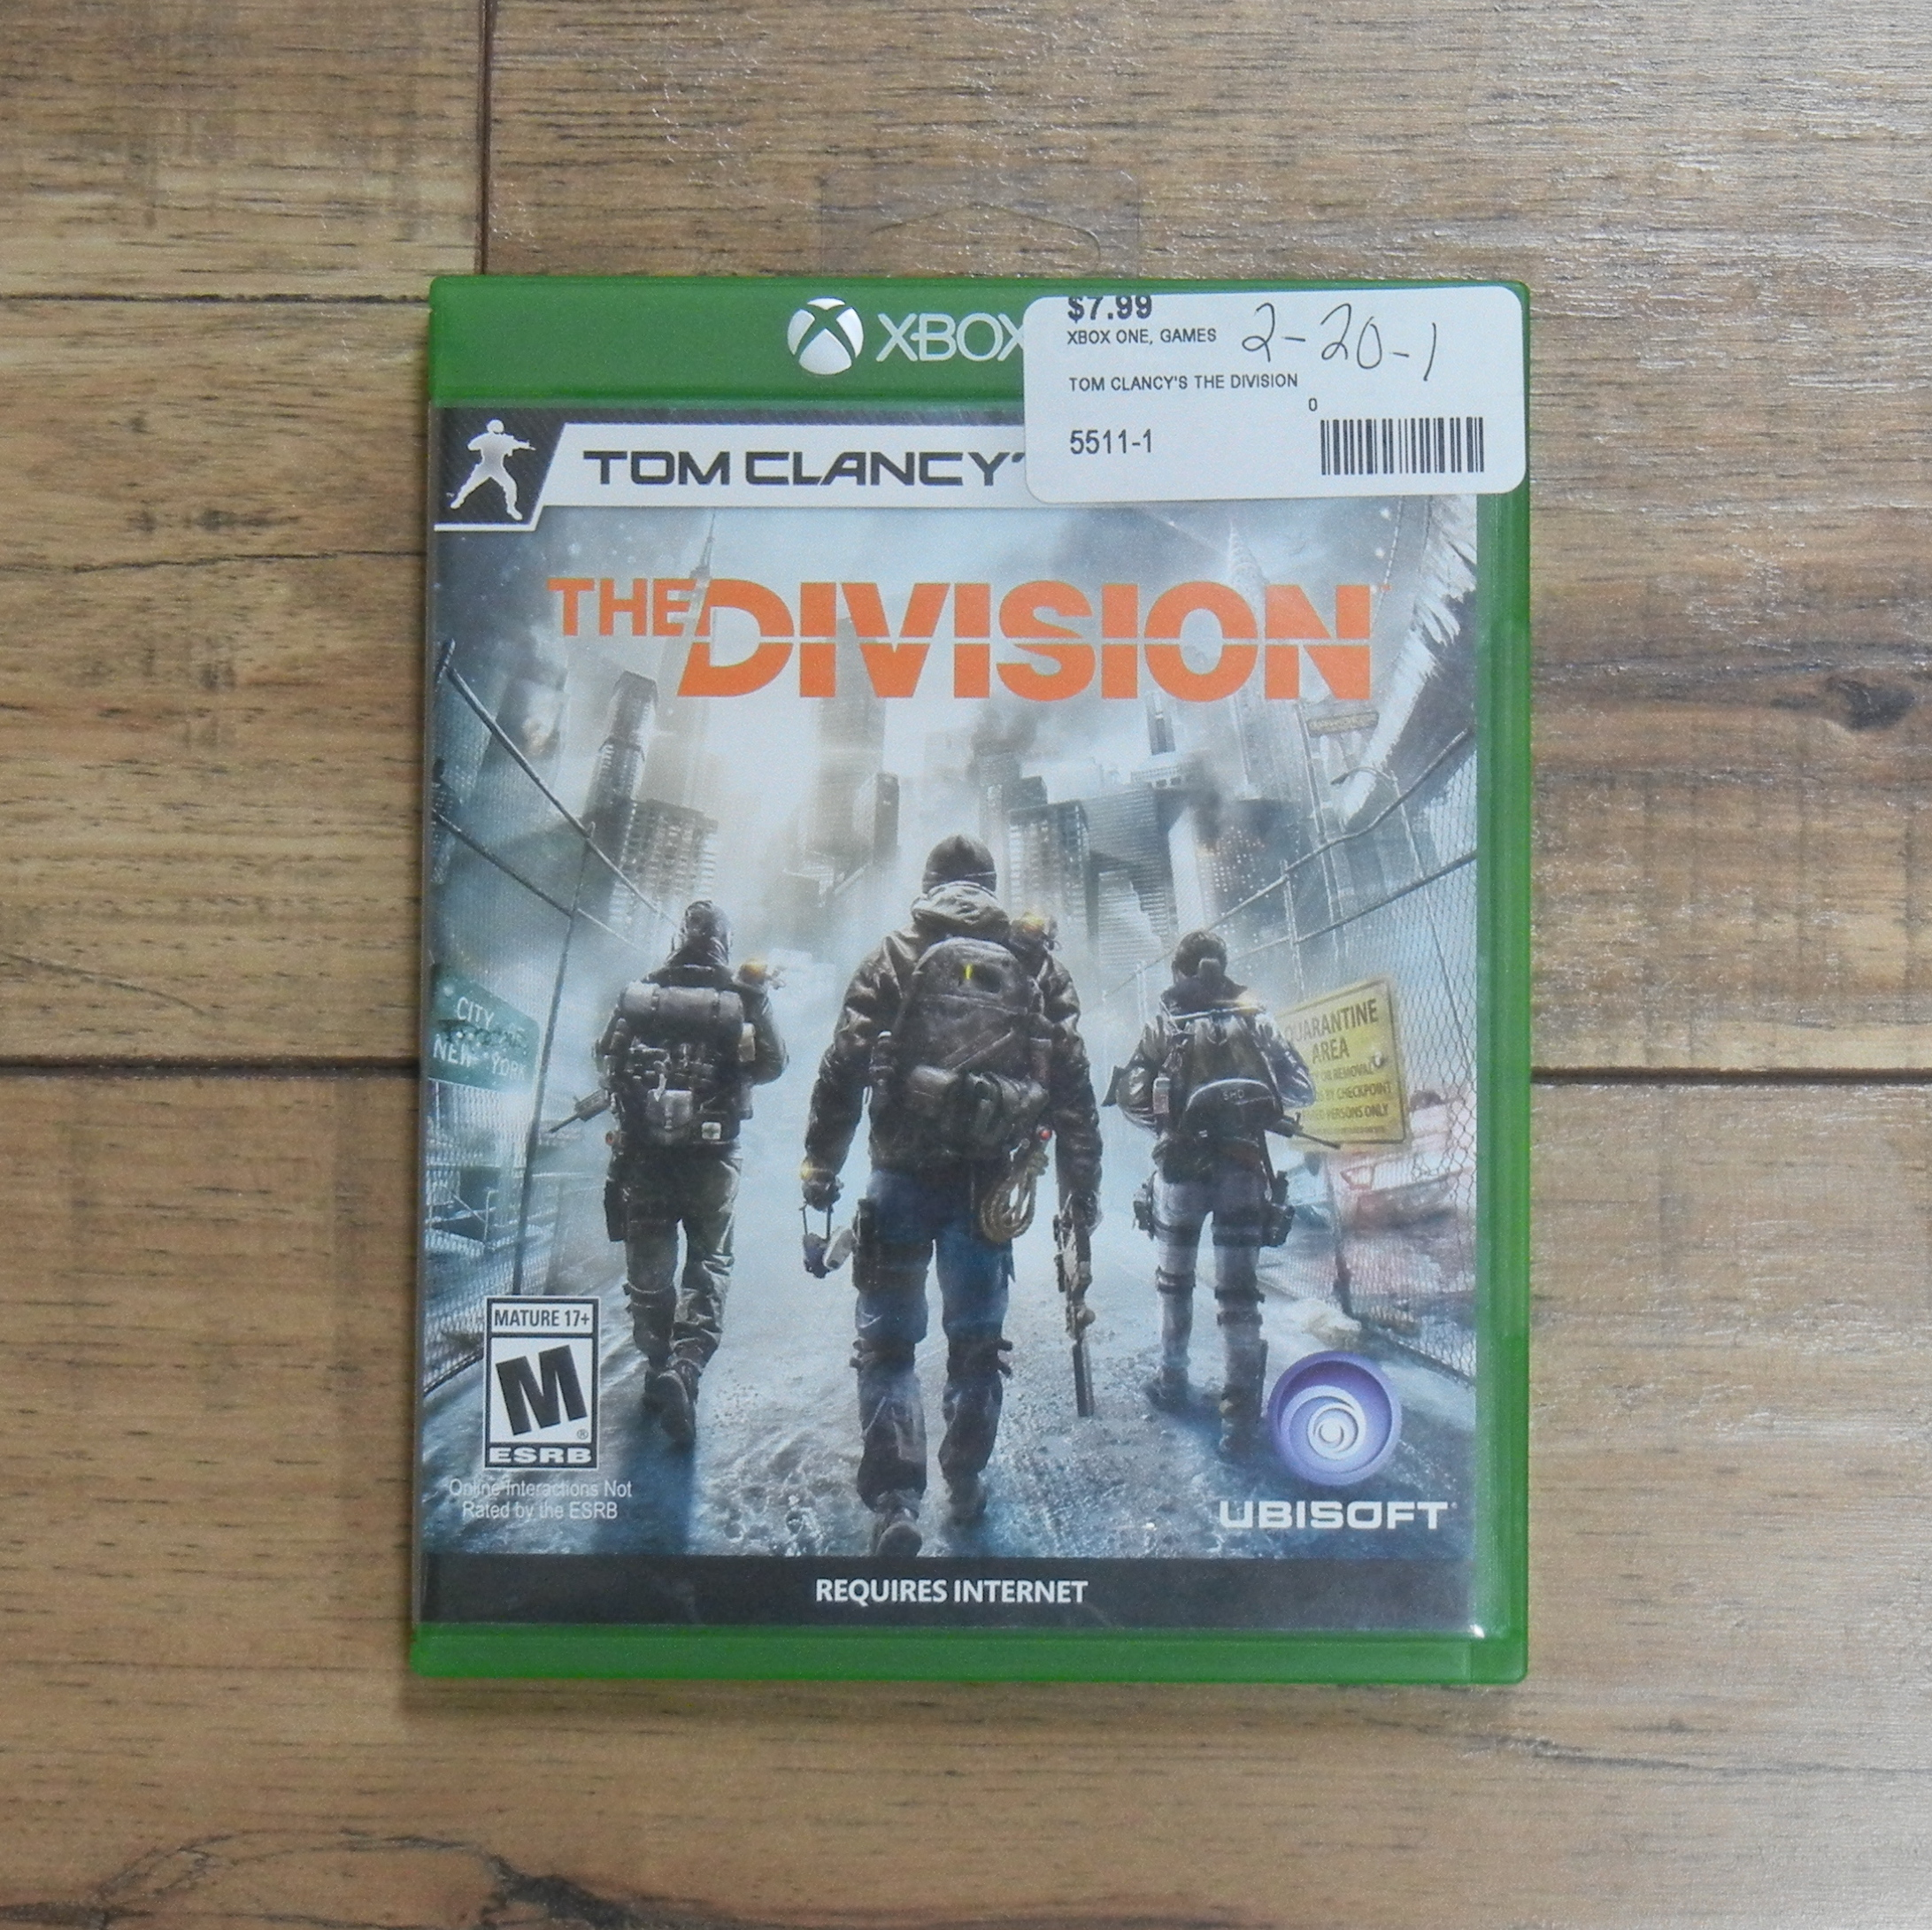 TOM CLANCY'S THE DIVISION XBOX ONE GAMES